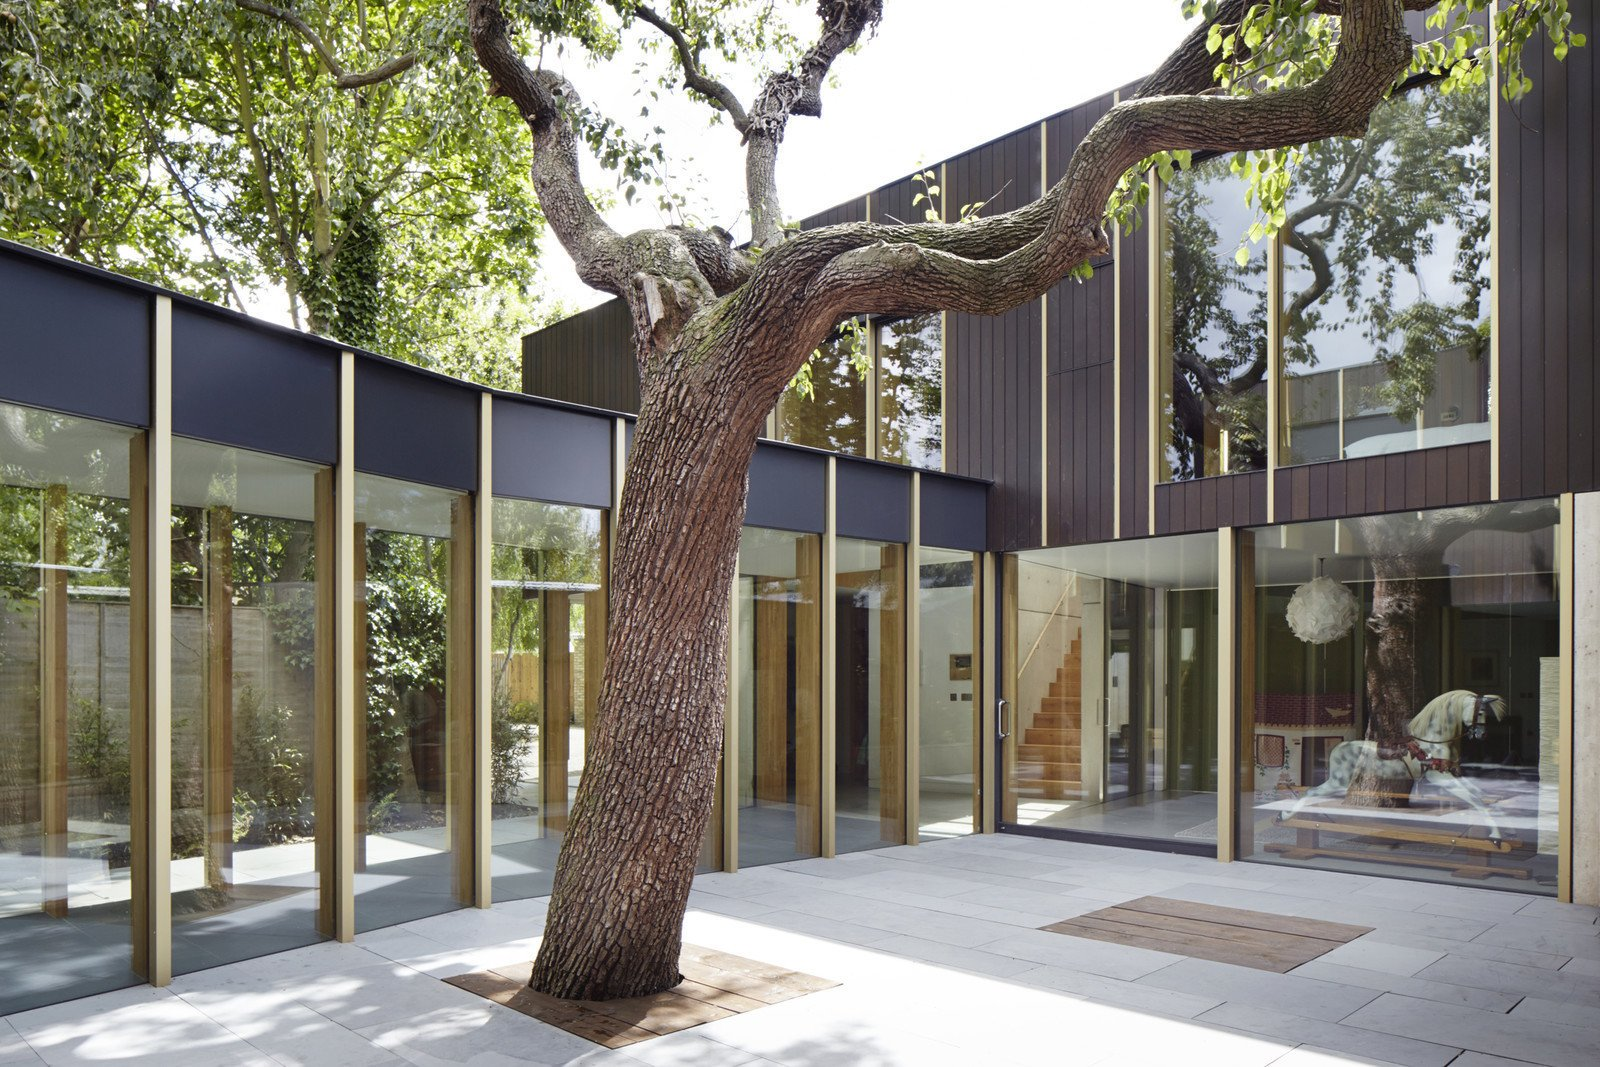 10 Homes With Large, Well-Ventilated Courtyards - Photo 1 of 10